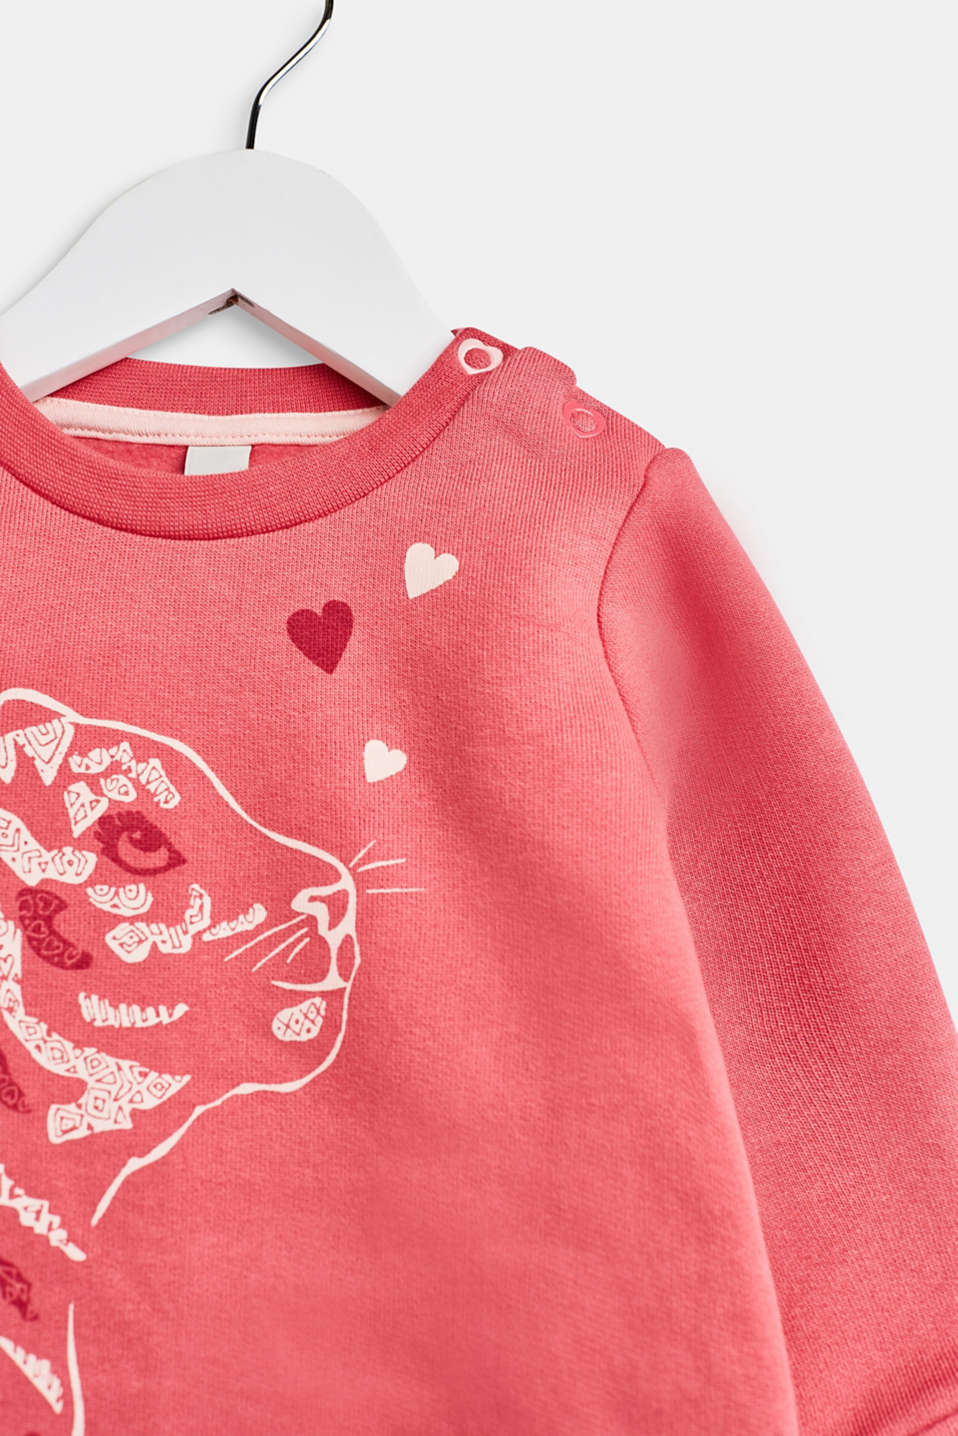 Sweatshirt with a print, 100% cotton, LCTINTED ROSE, detail image number 3